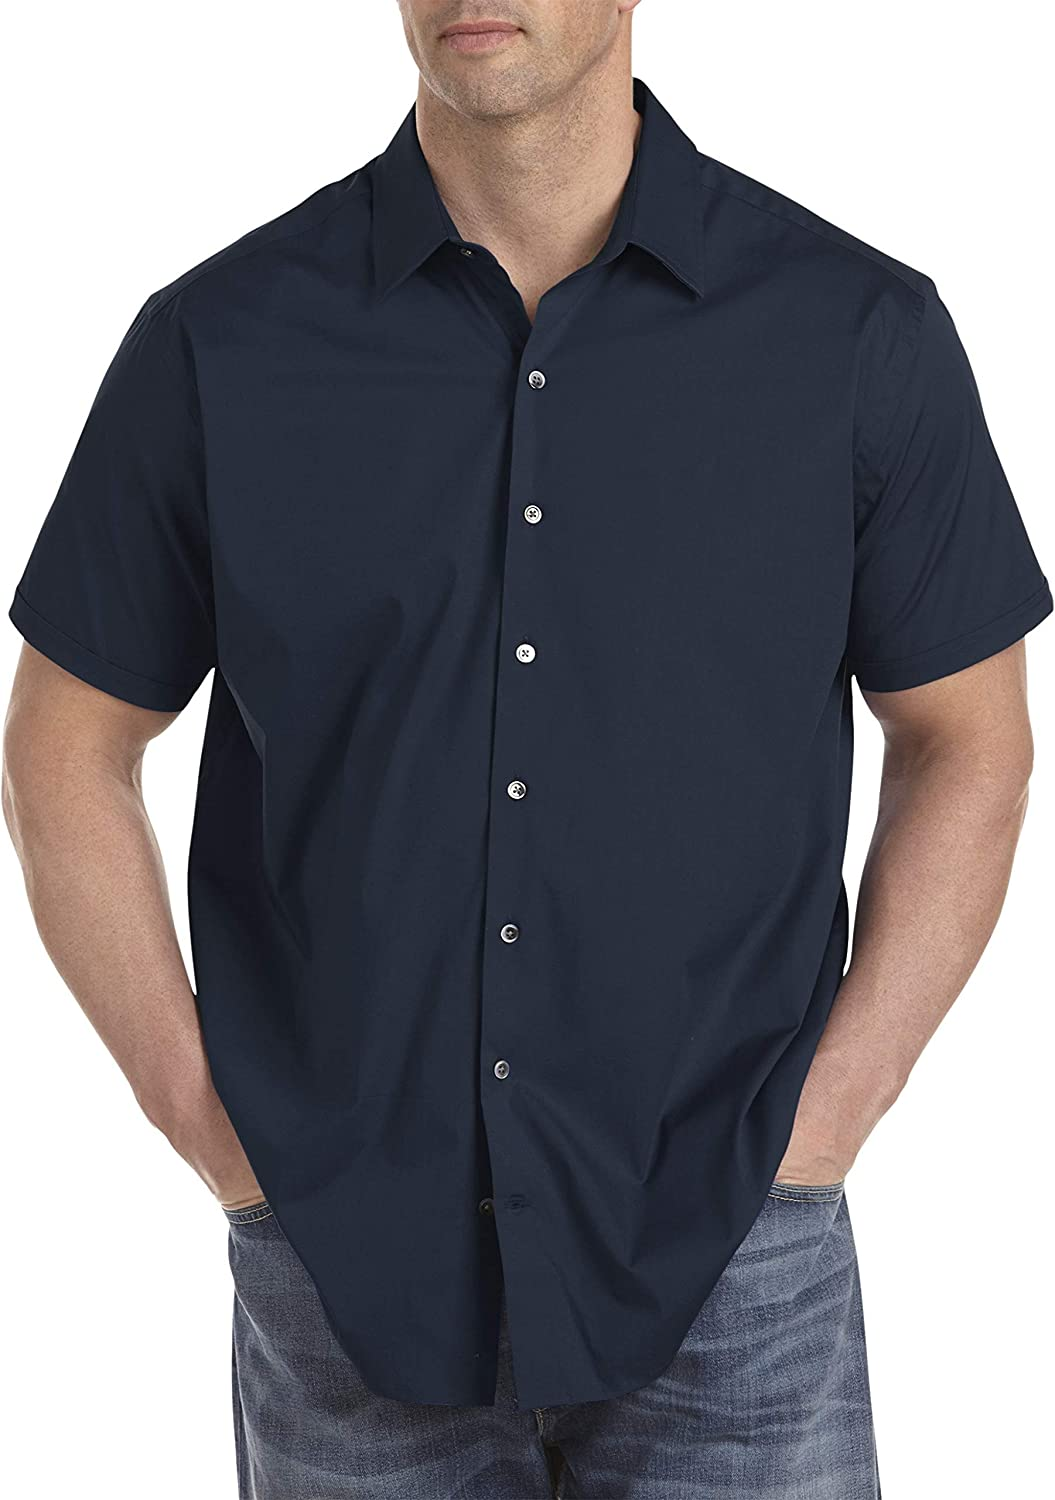 Twenty-Eight Degrees by DXL Big and Tall Solid Stretch Sport Shirts